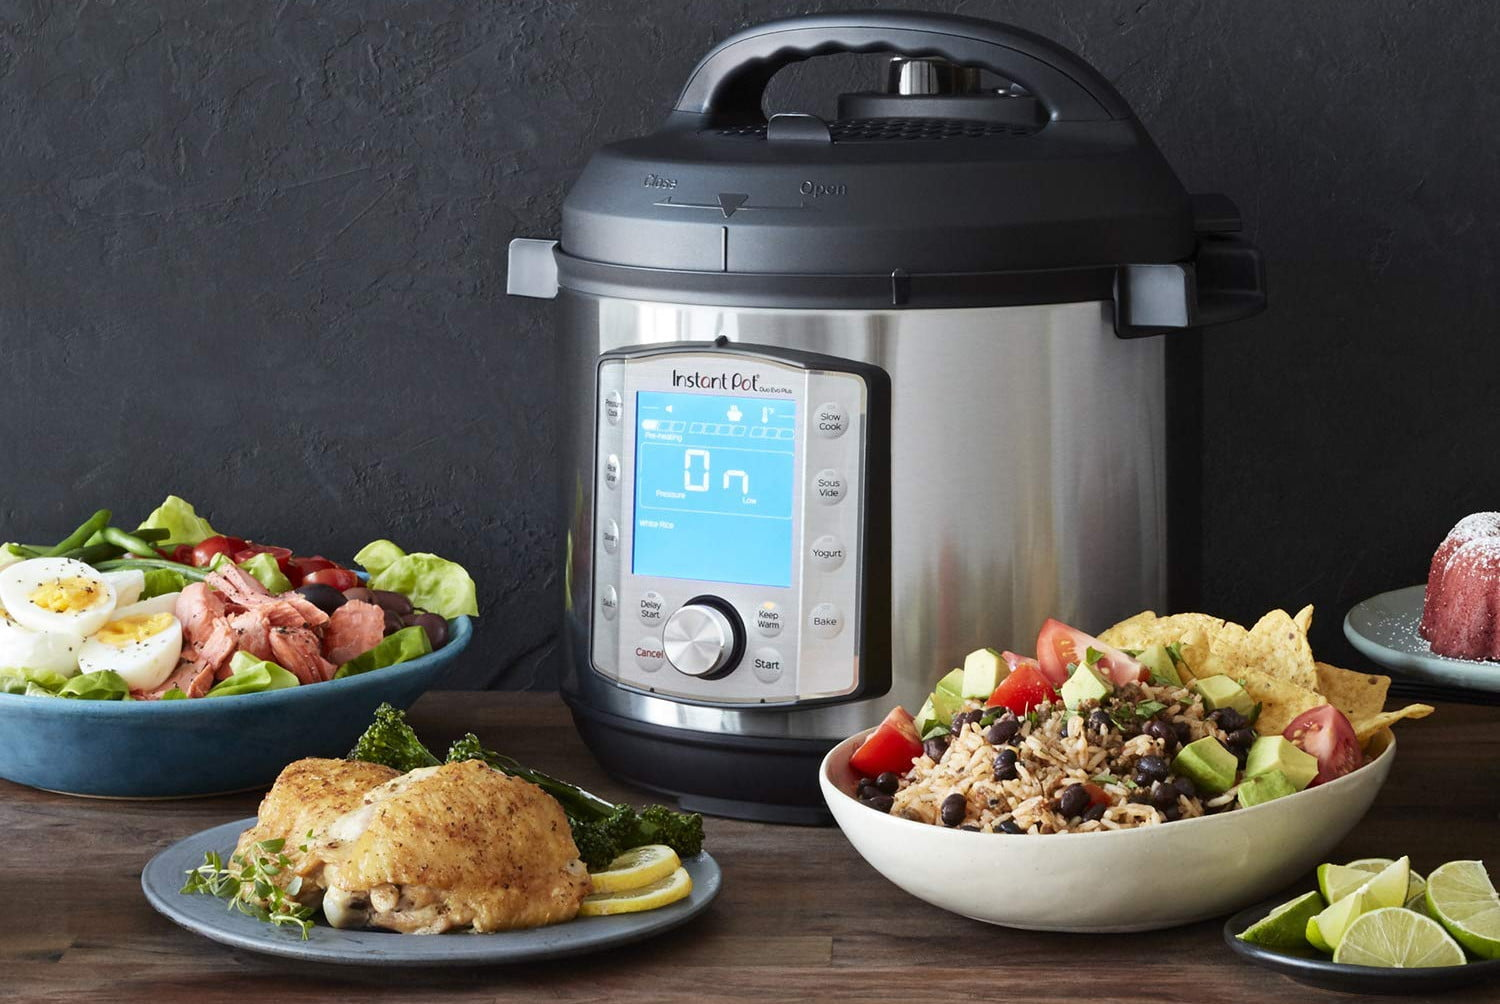 Instant Pot launches 10 new multi-functional space-saving cooking appliances